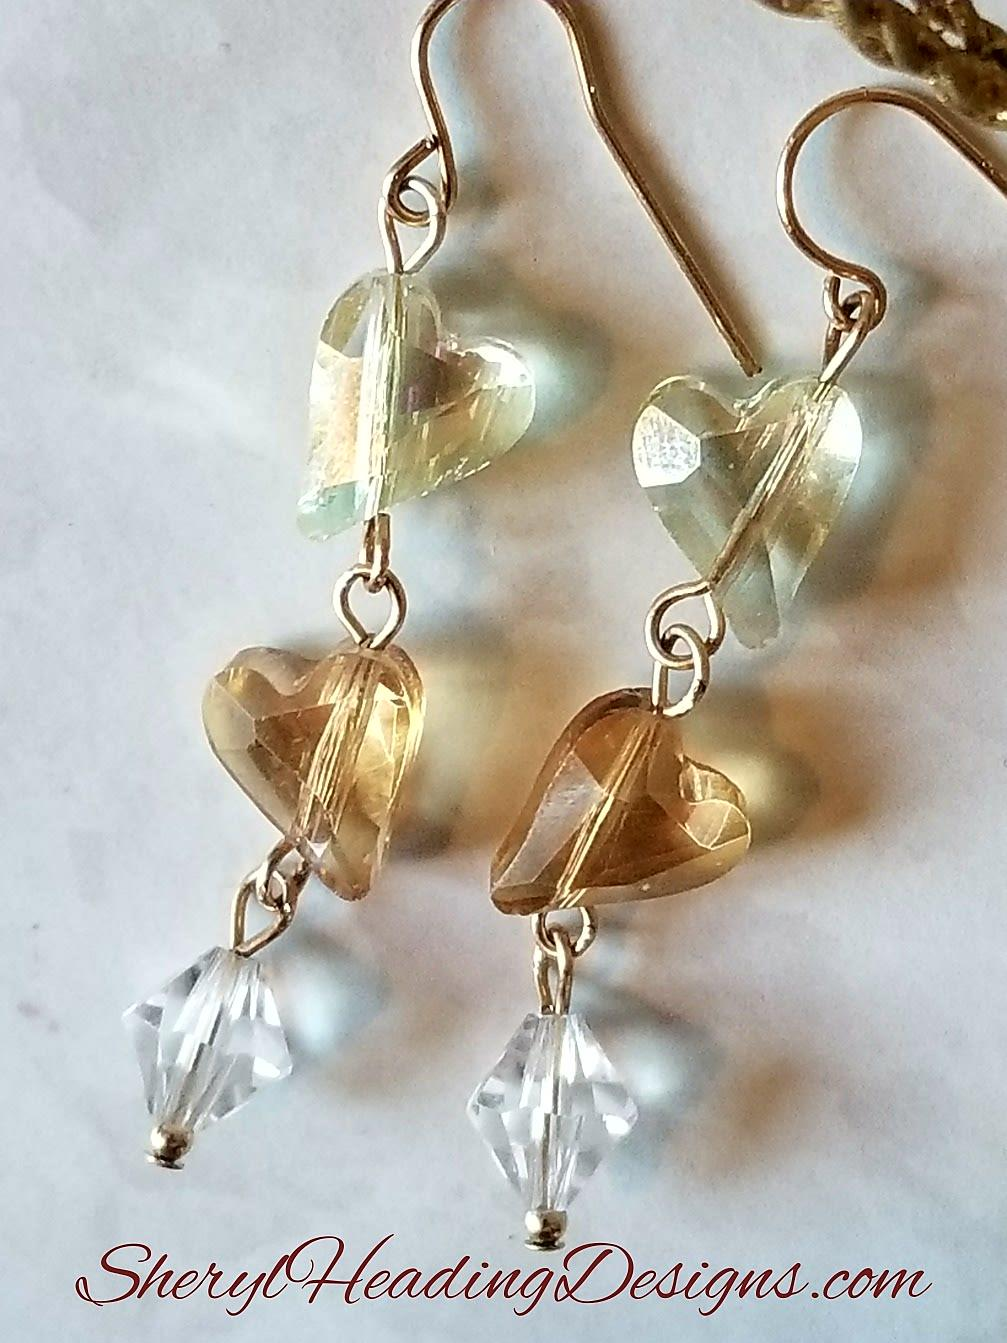 NEW ITEM!! Two Hearts Make One Earrings - Sheryl Heading Designs